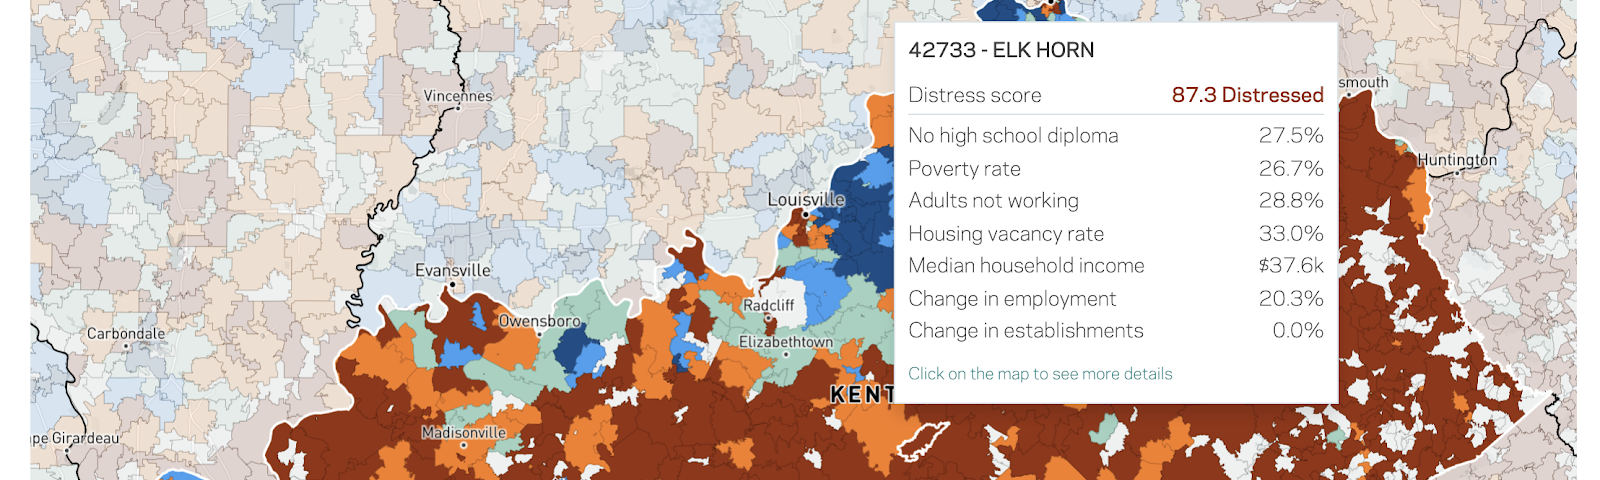 A choropleth map of distressed zip codes in the state of Kentucky.